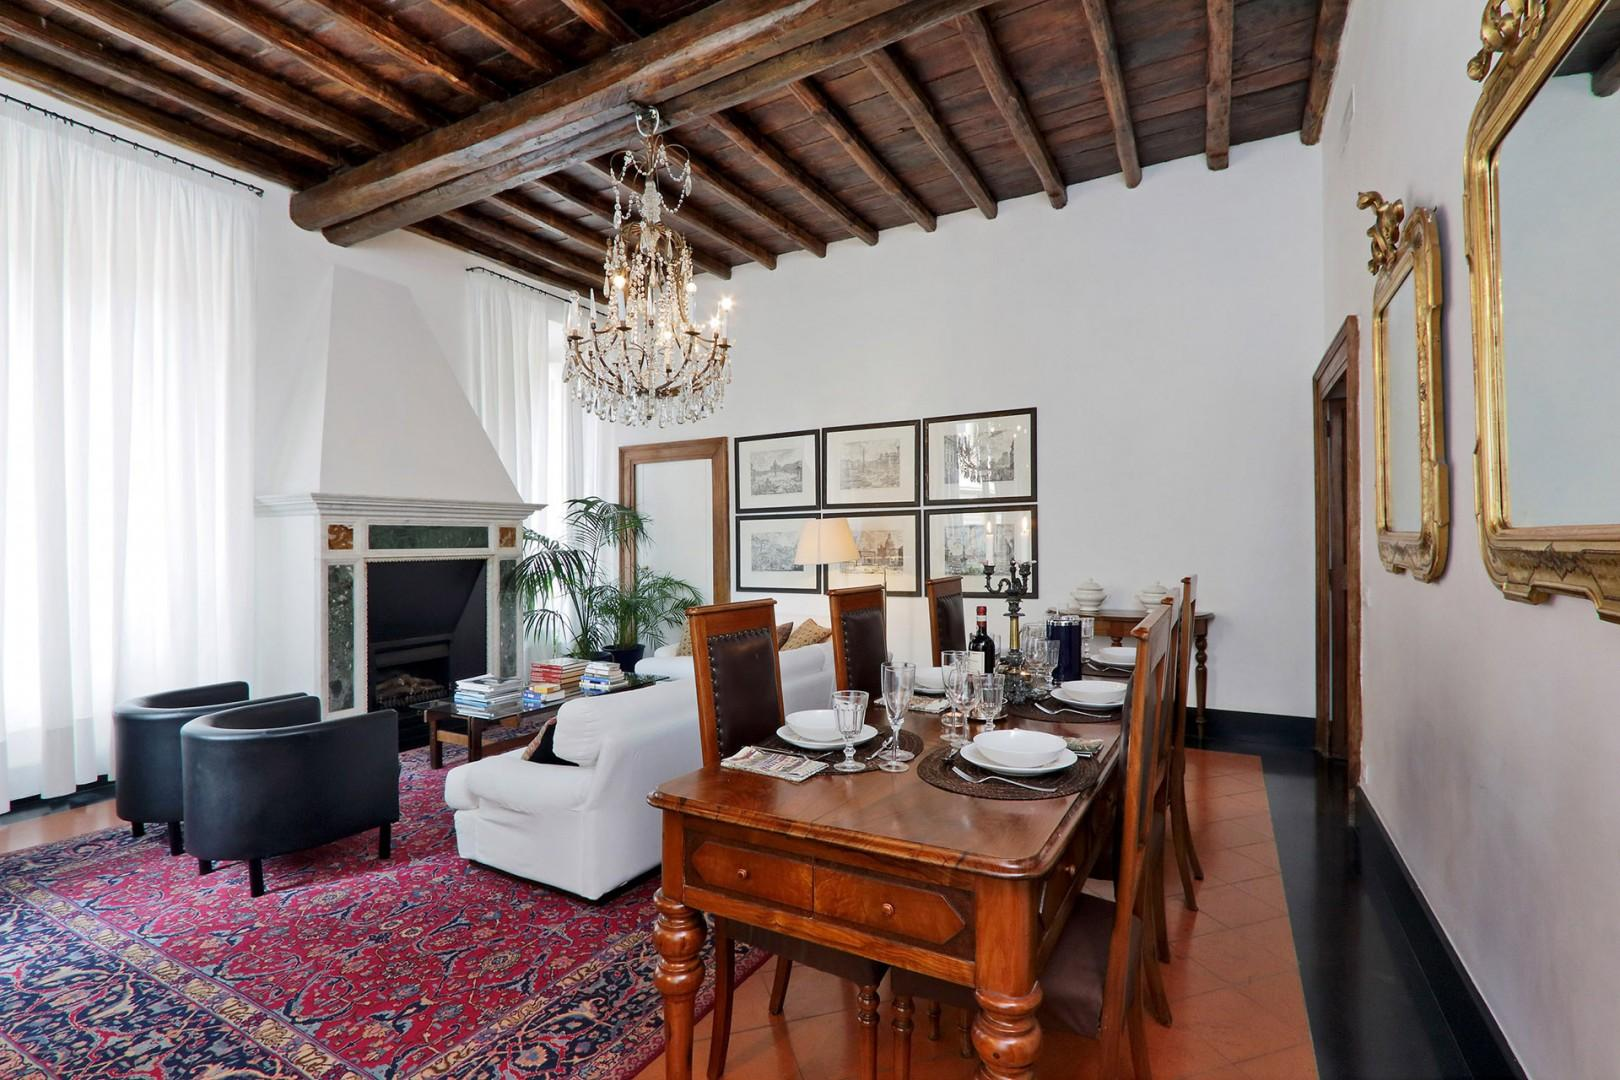 More views of the living room and dining area with lovely high beamed ceilings.